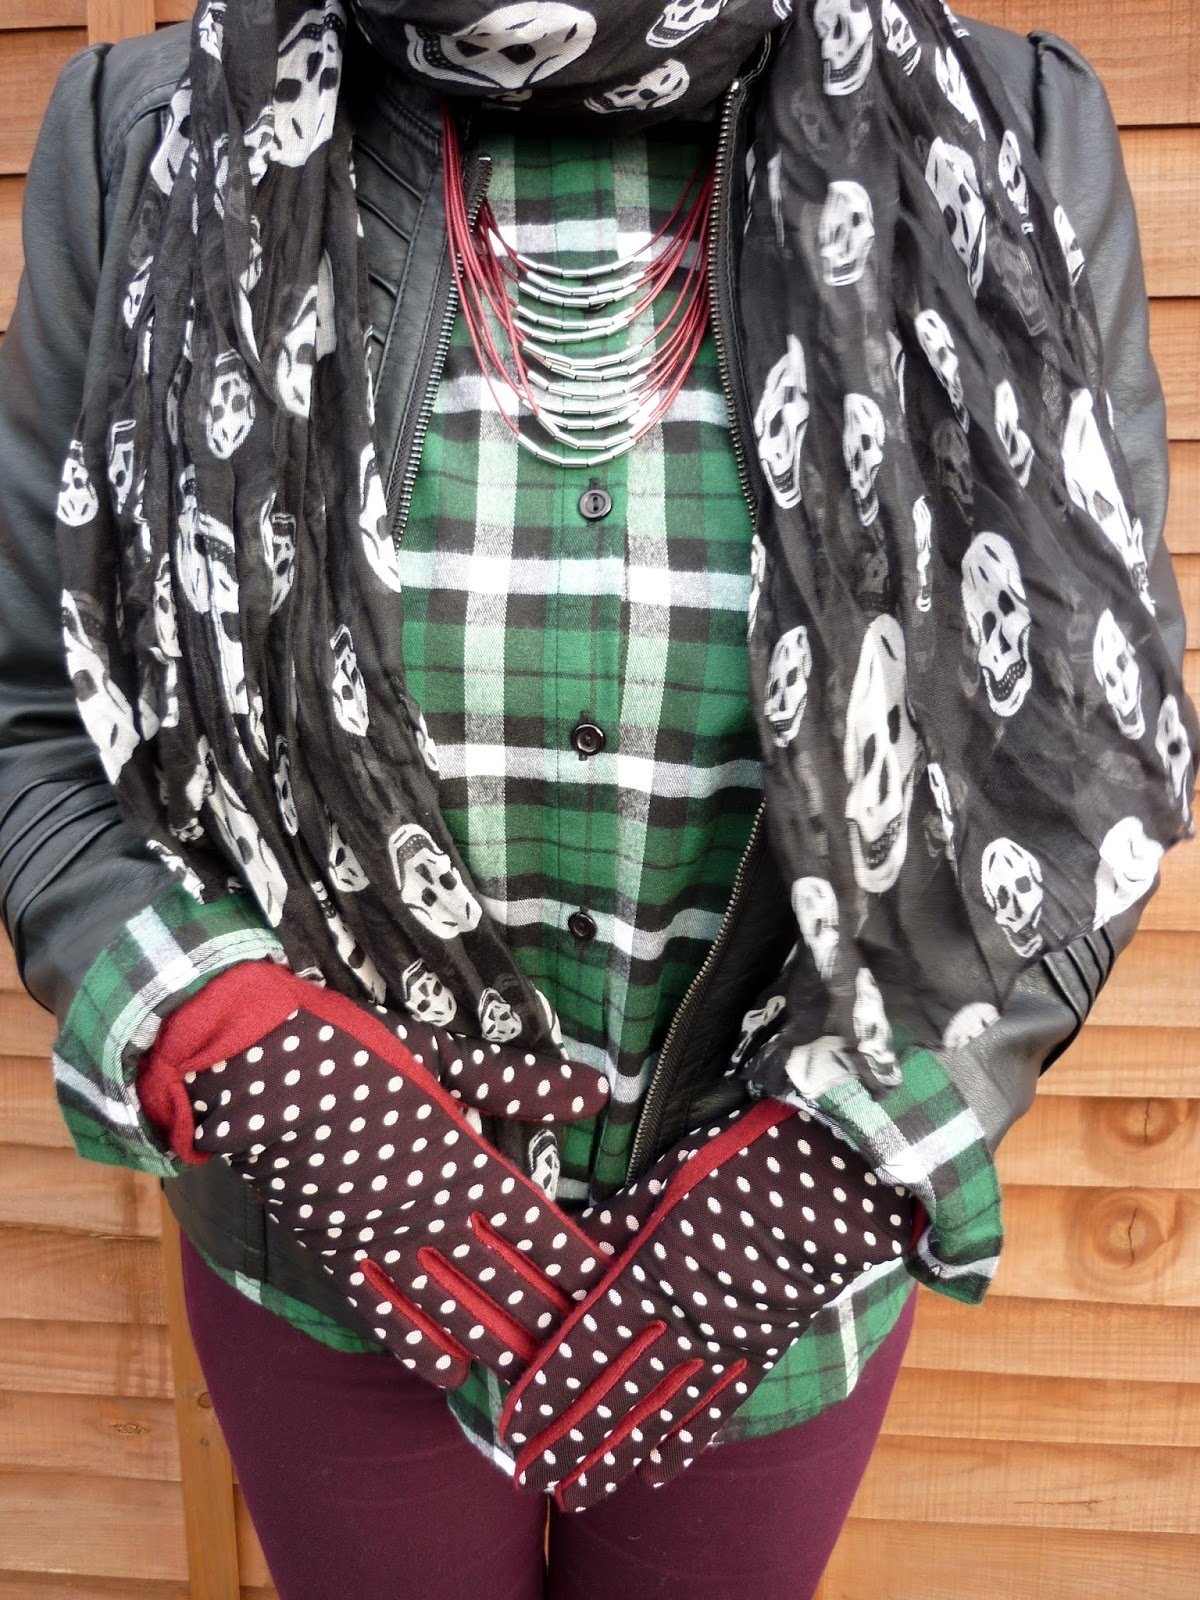 New Look Plaid Shirt, Dorothy Perkins Necklace, Camaieu Gloves, Skull Scarf | Petite Silver Vixen